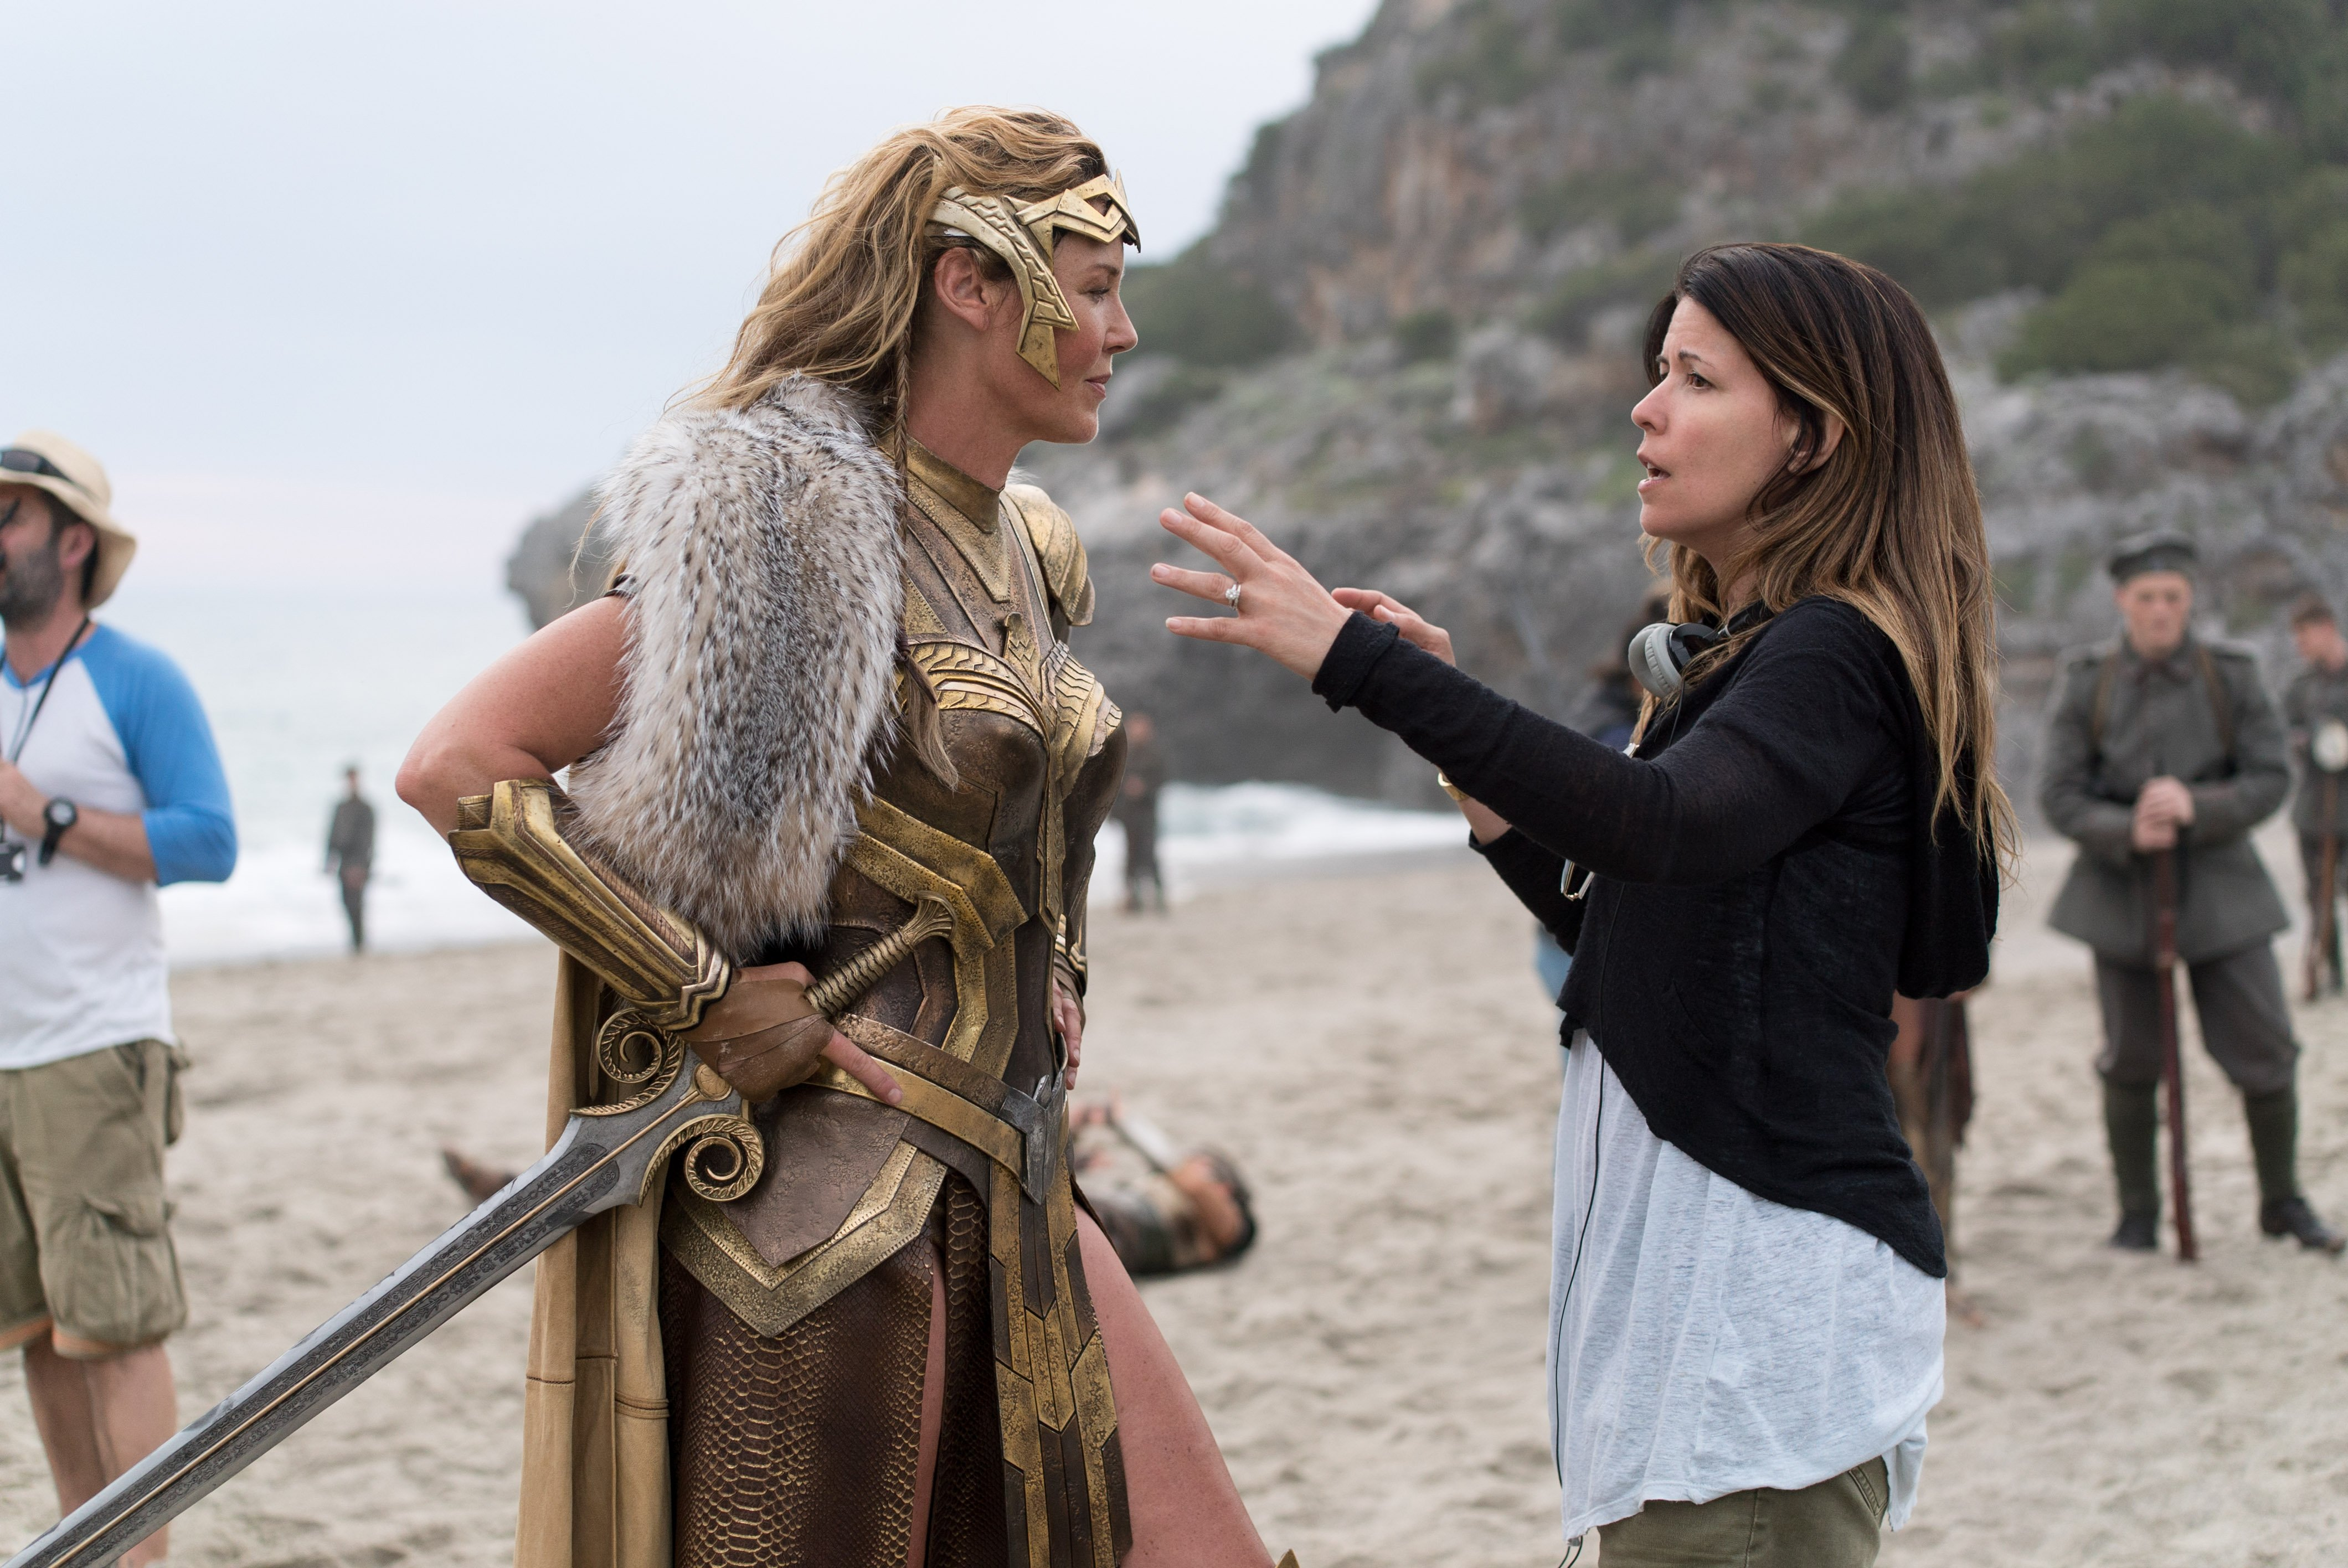 wonder-woman-movie-image-56